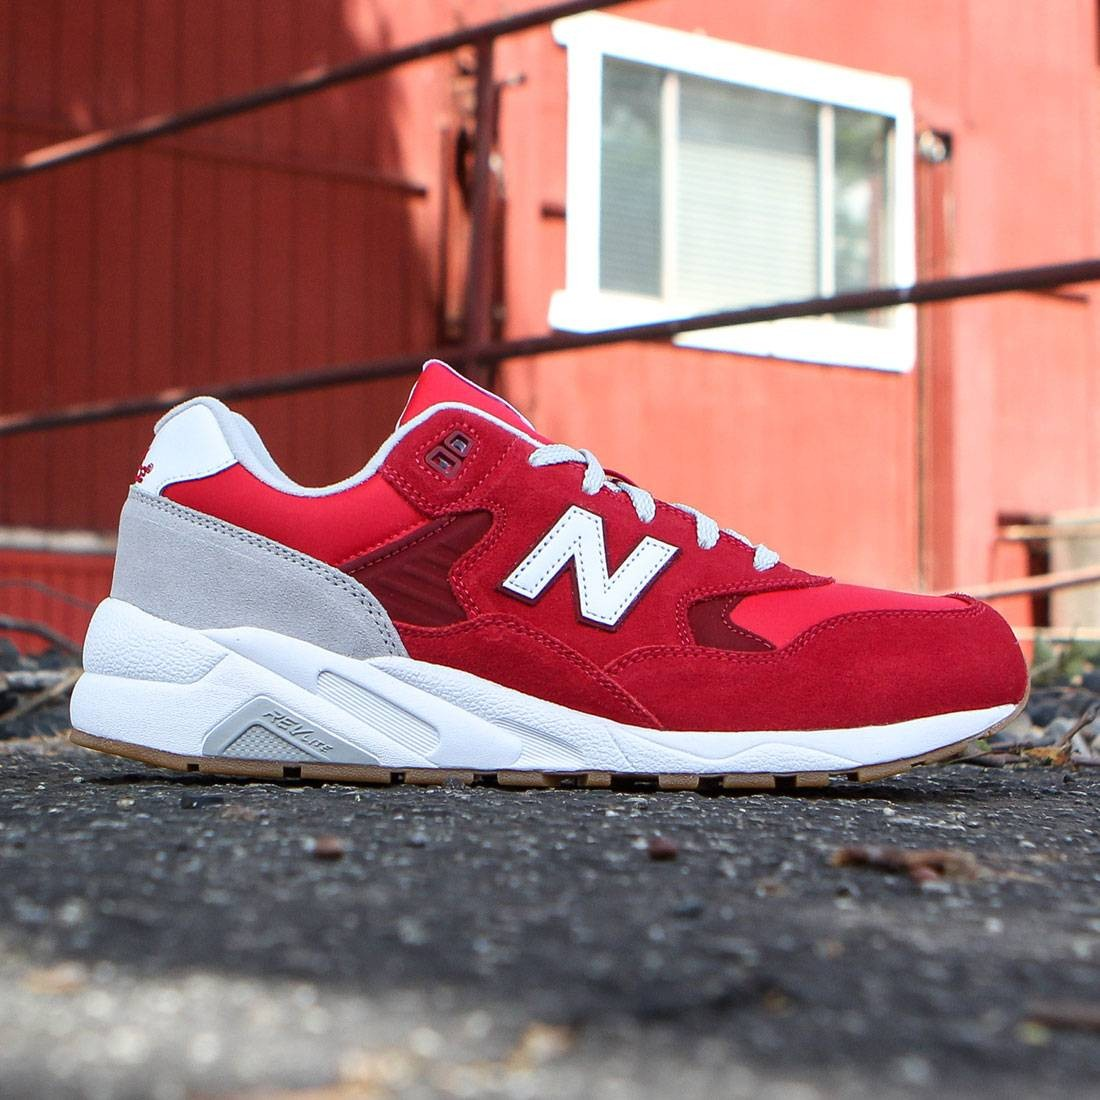 quality design 3c5e2 b0a9a New Balance Men 580 Elite Edition REVlite MRT580MB (red / scarlet sage /  light grey)